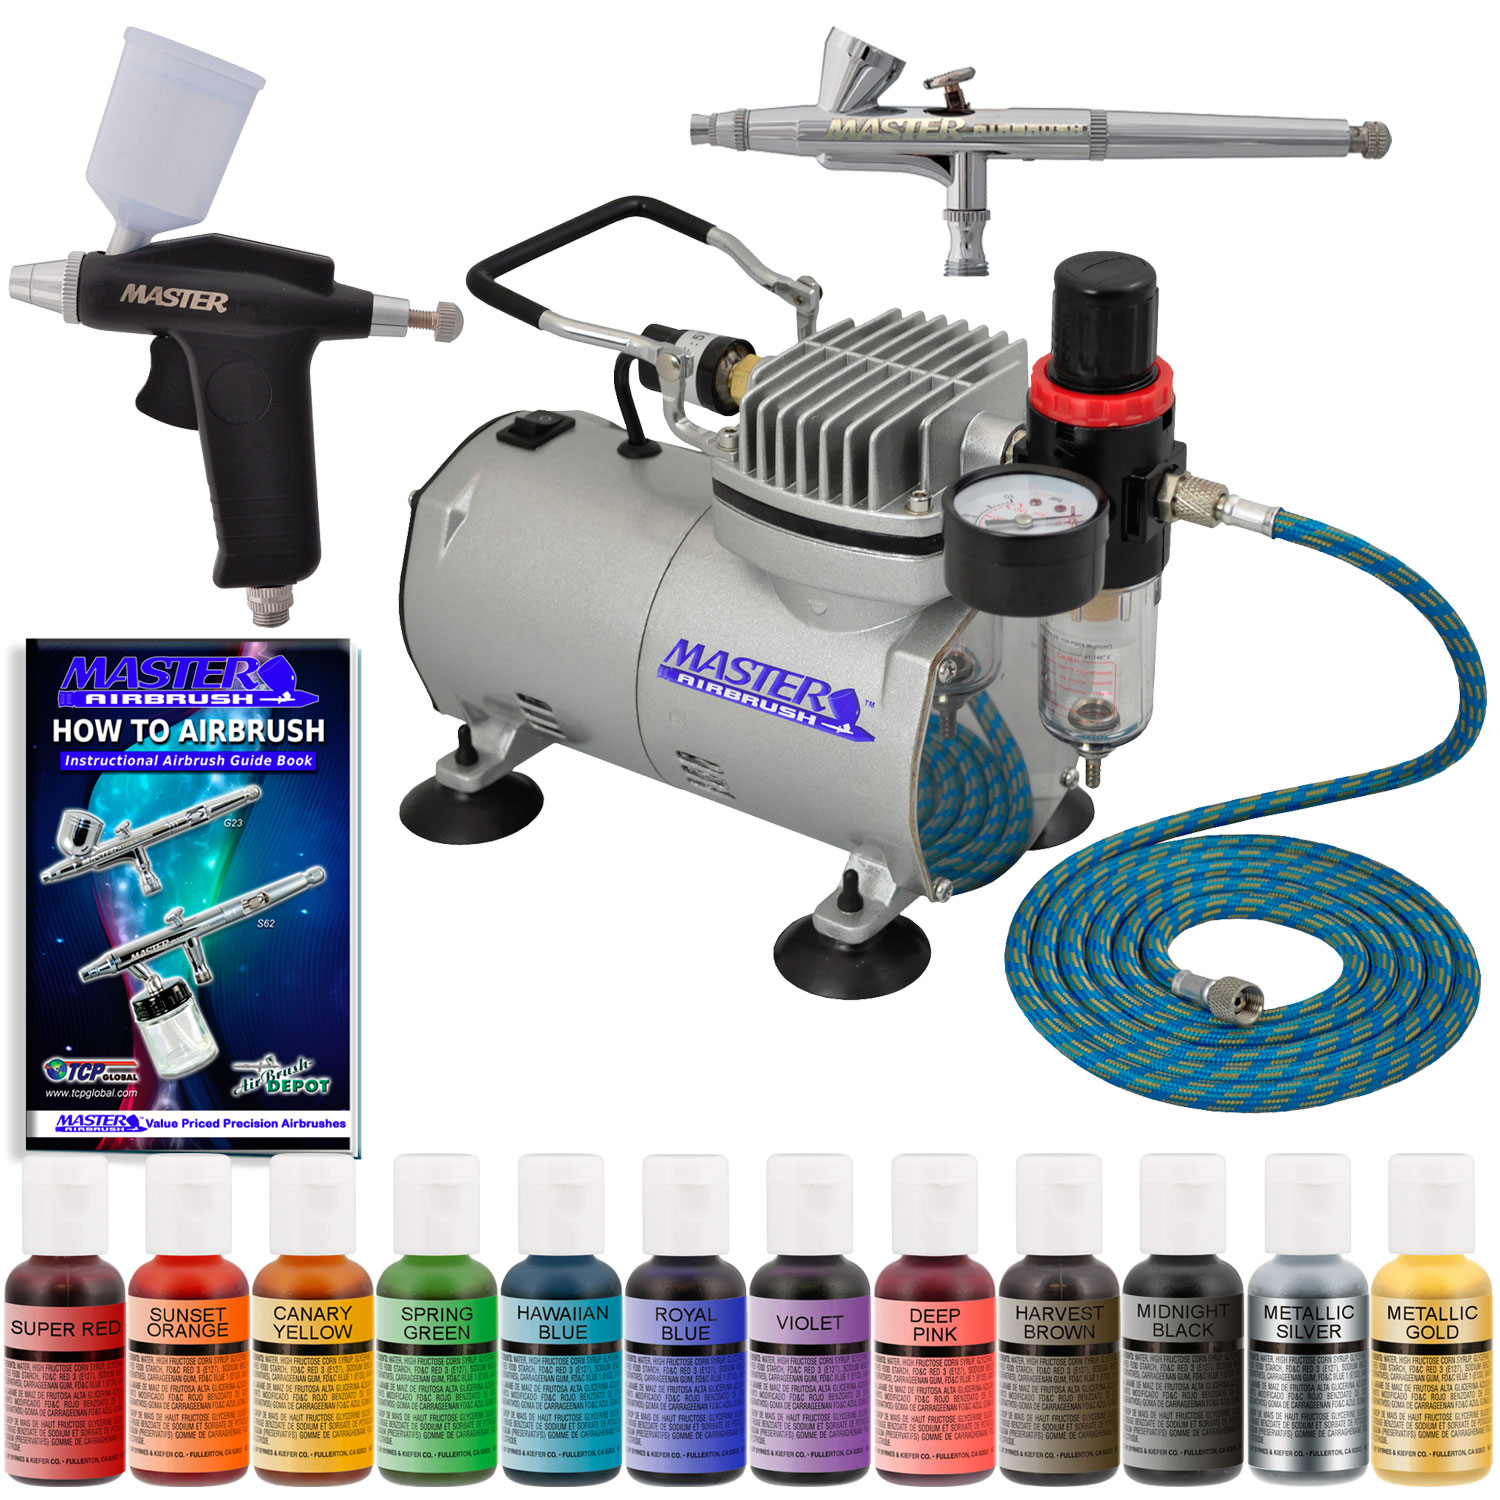 2 Airbrush Cake Decorating Compressor Kit, 12 Color Chefmaster Food ...